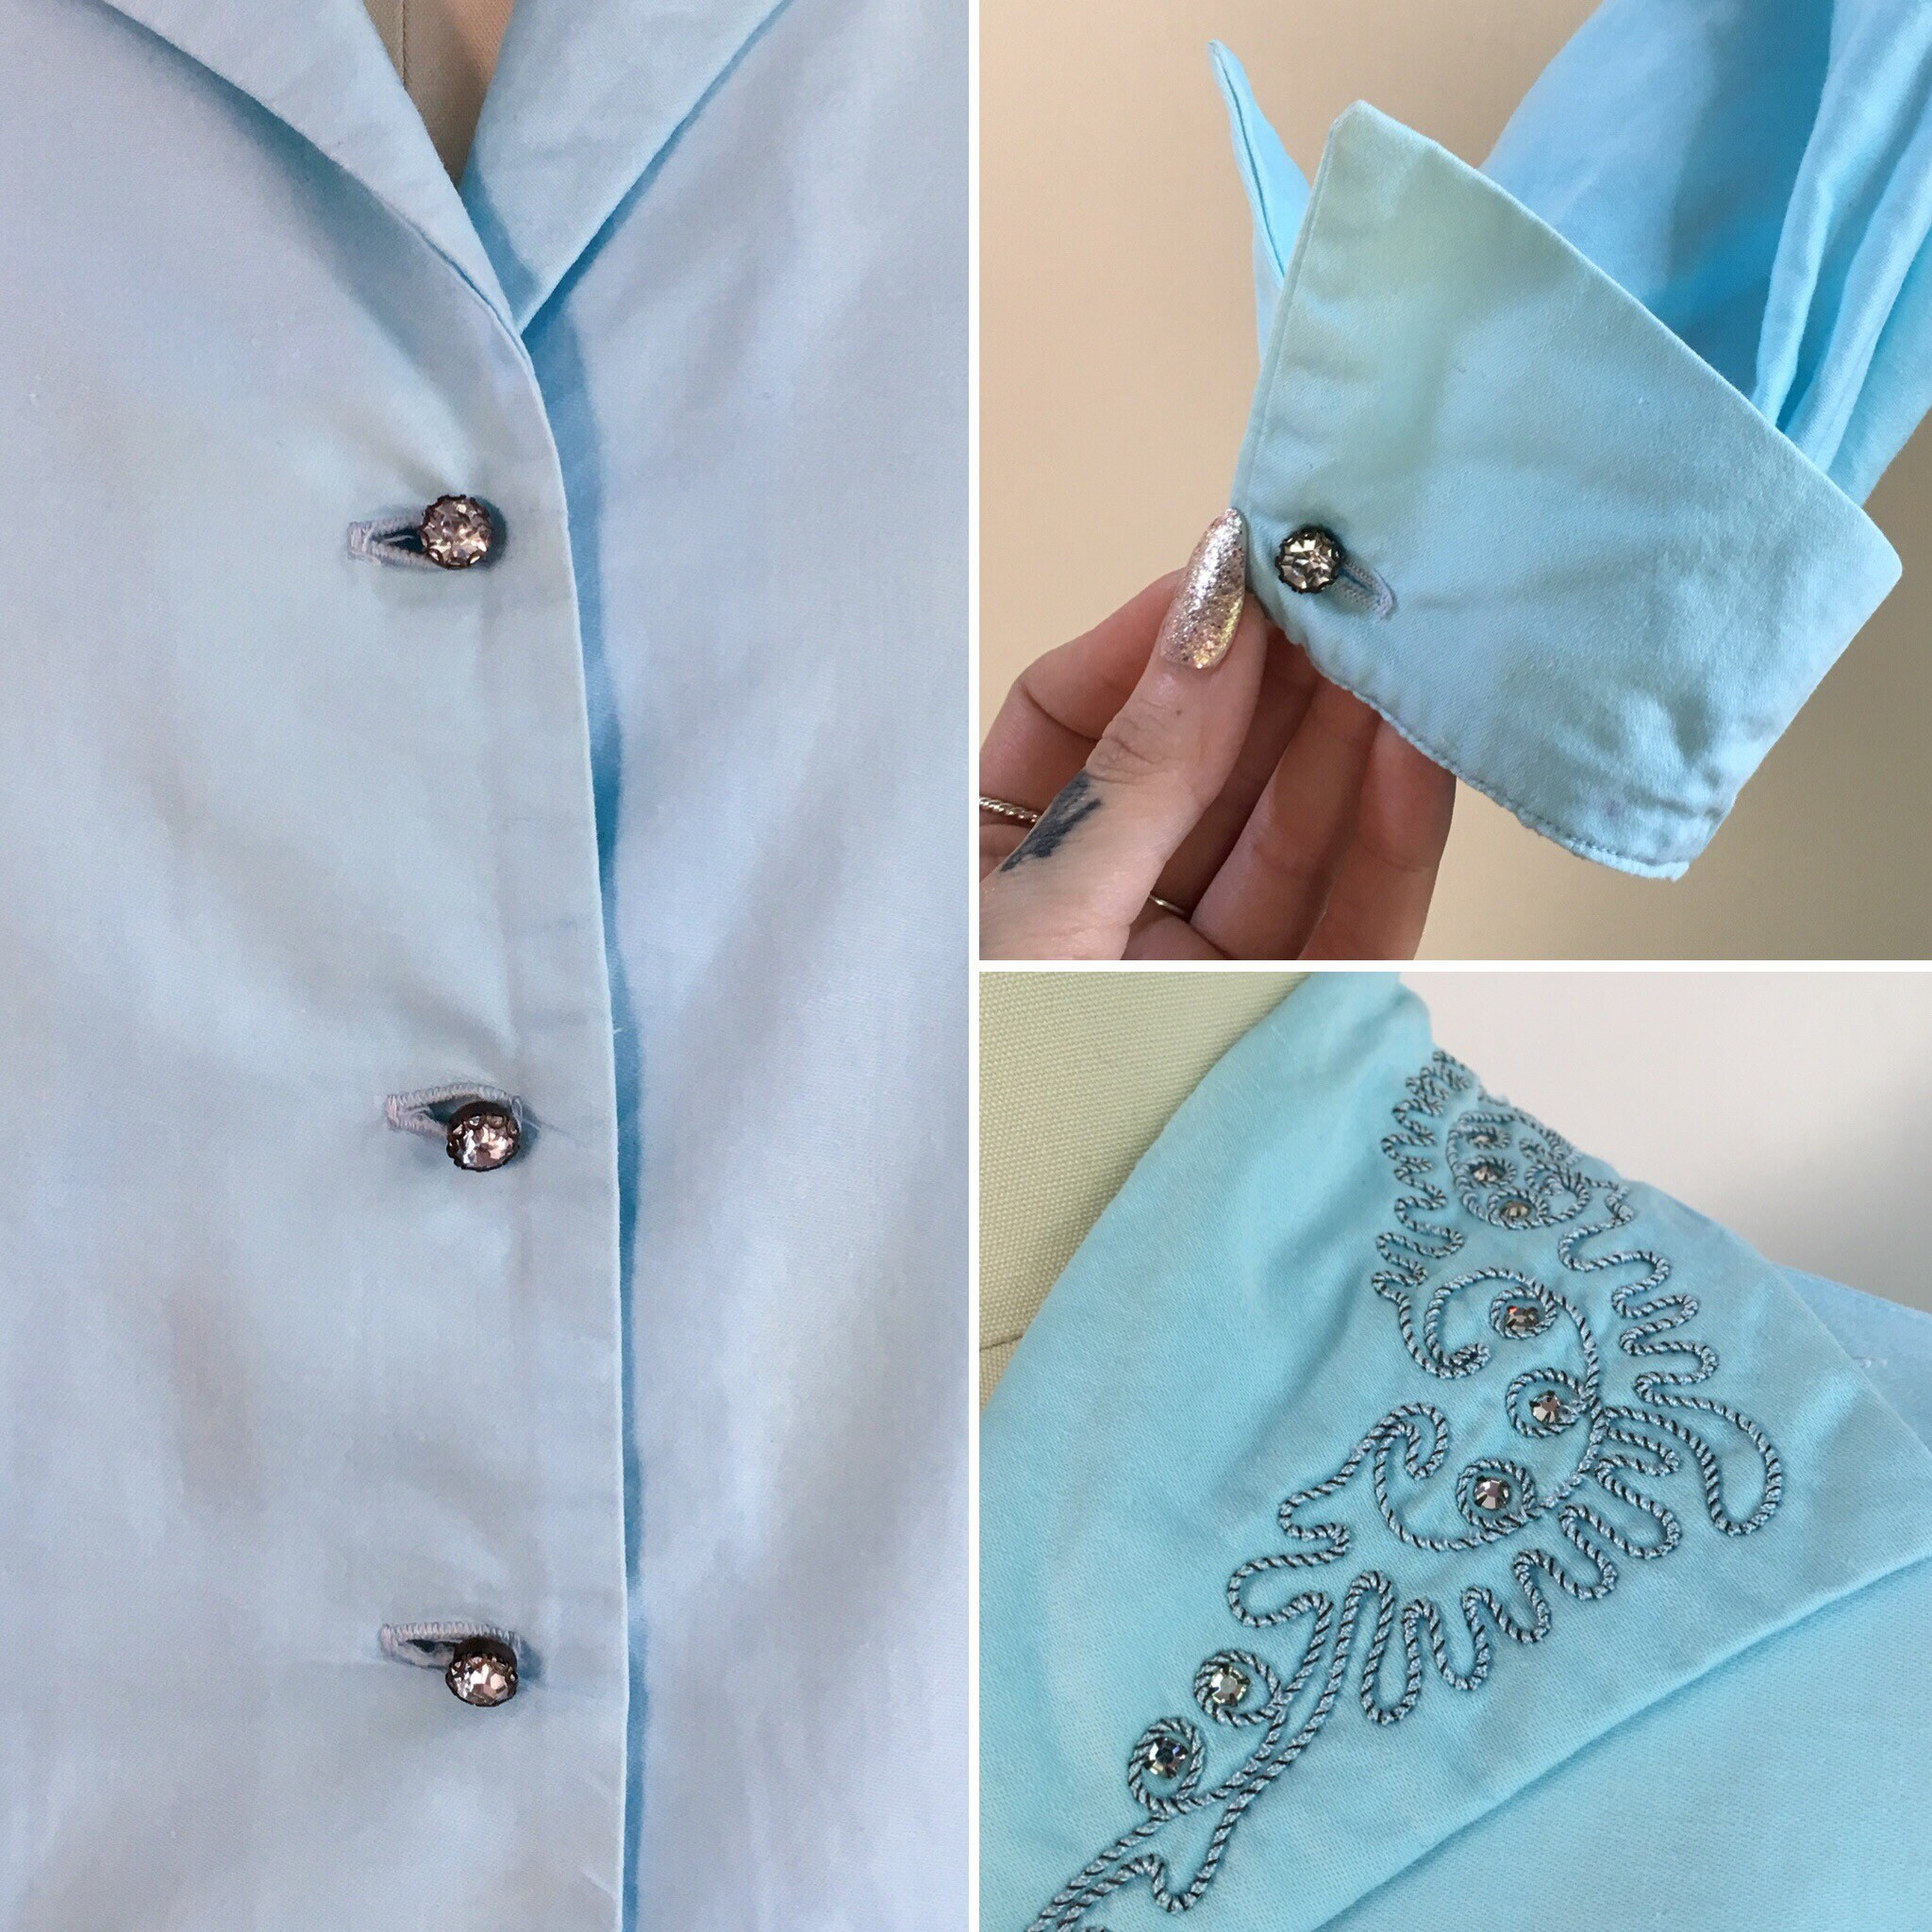 sz M Vintage Women\u2019s 1950s Themed Long Sleeve Button Up Shirt with Rhinestones /&Patches by Get Lucky-Size Medium